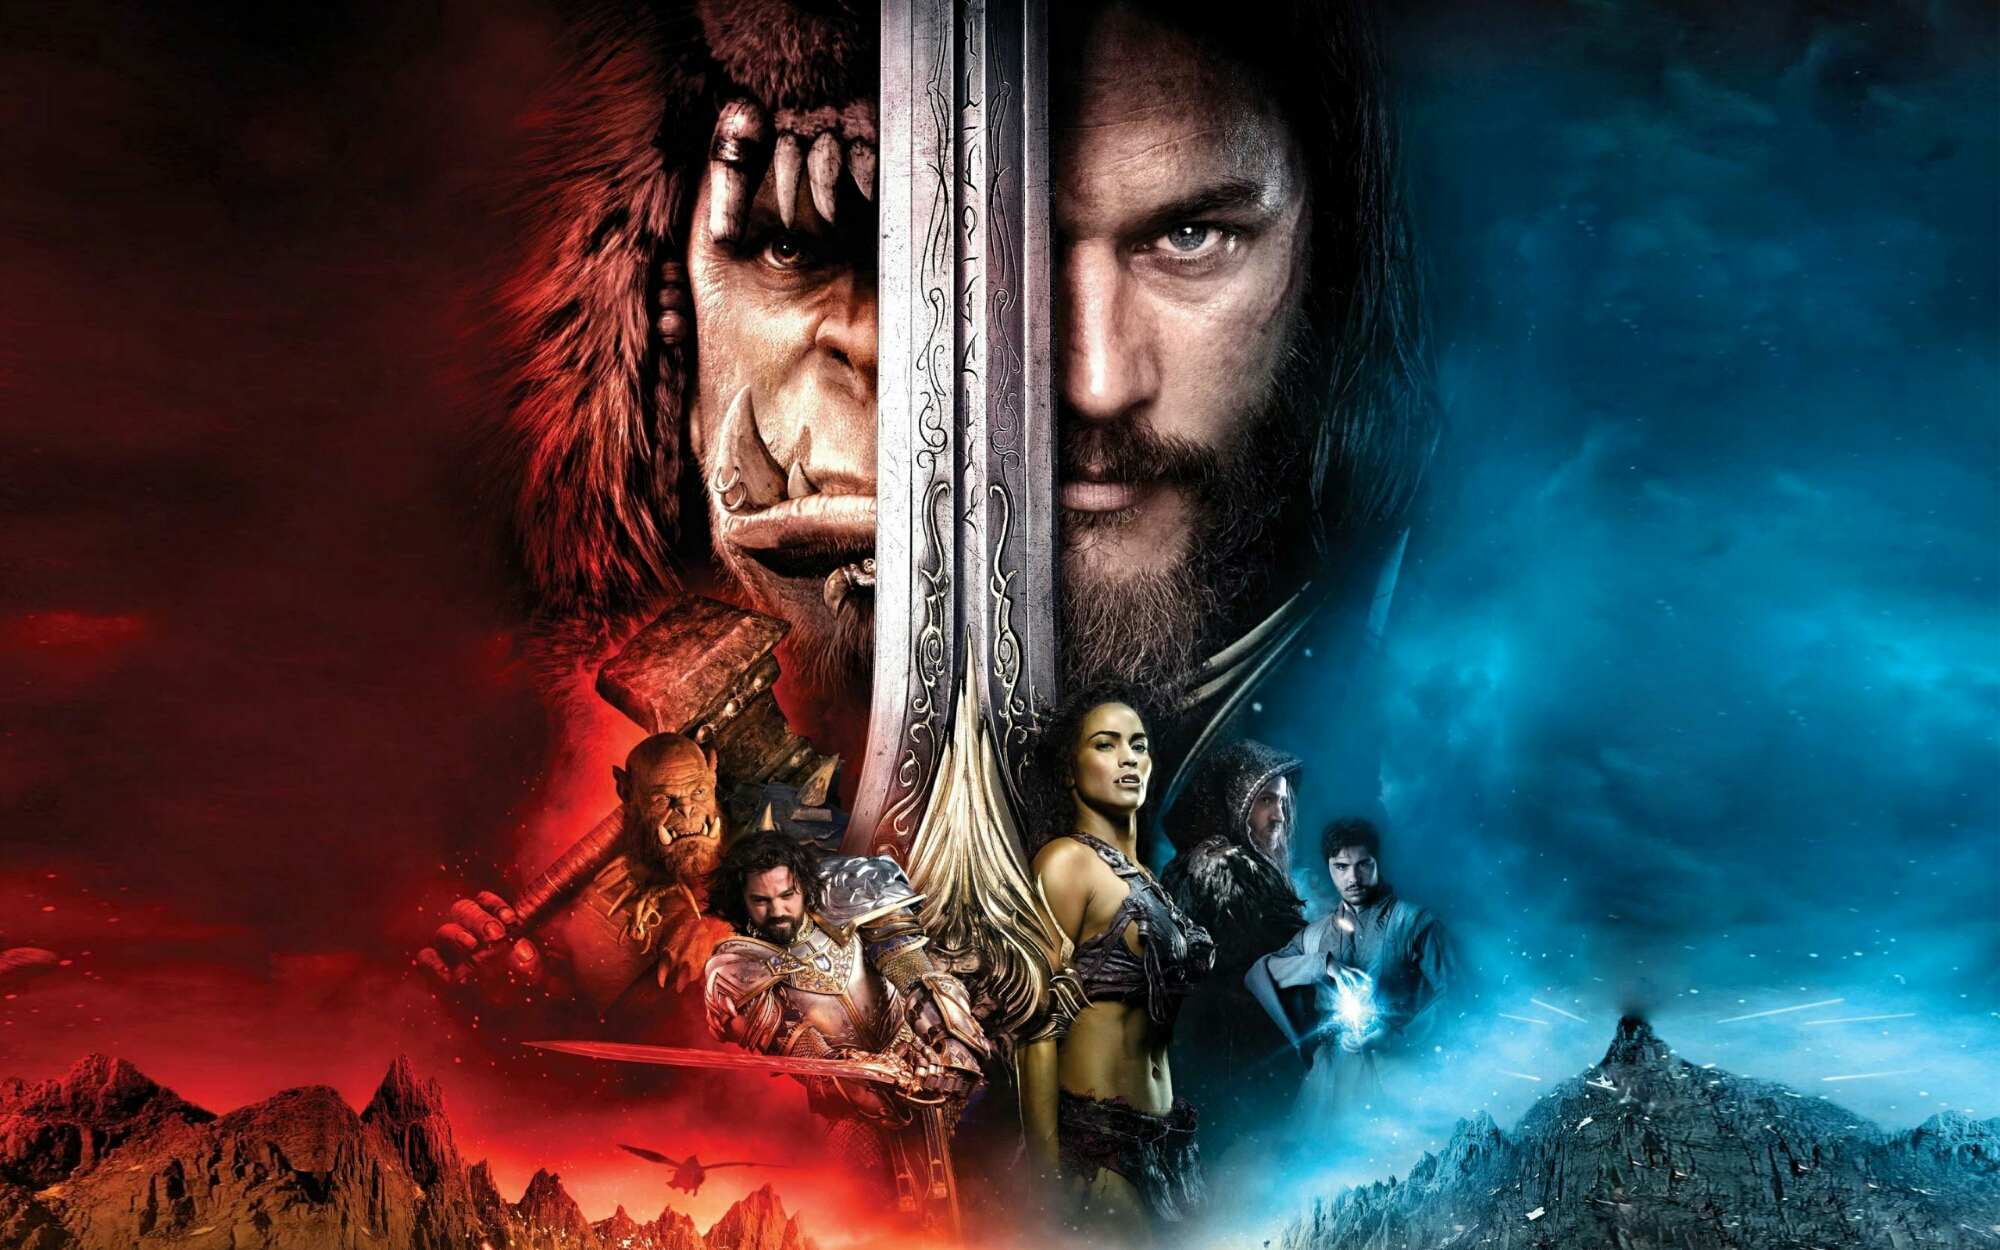 Warcraft Just Became The Highest Grossing Video Game Movie in History